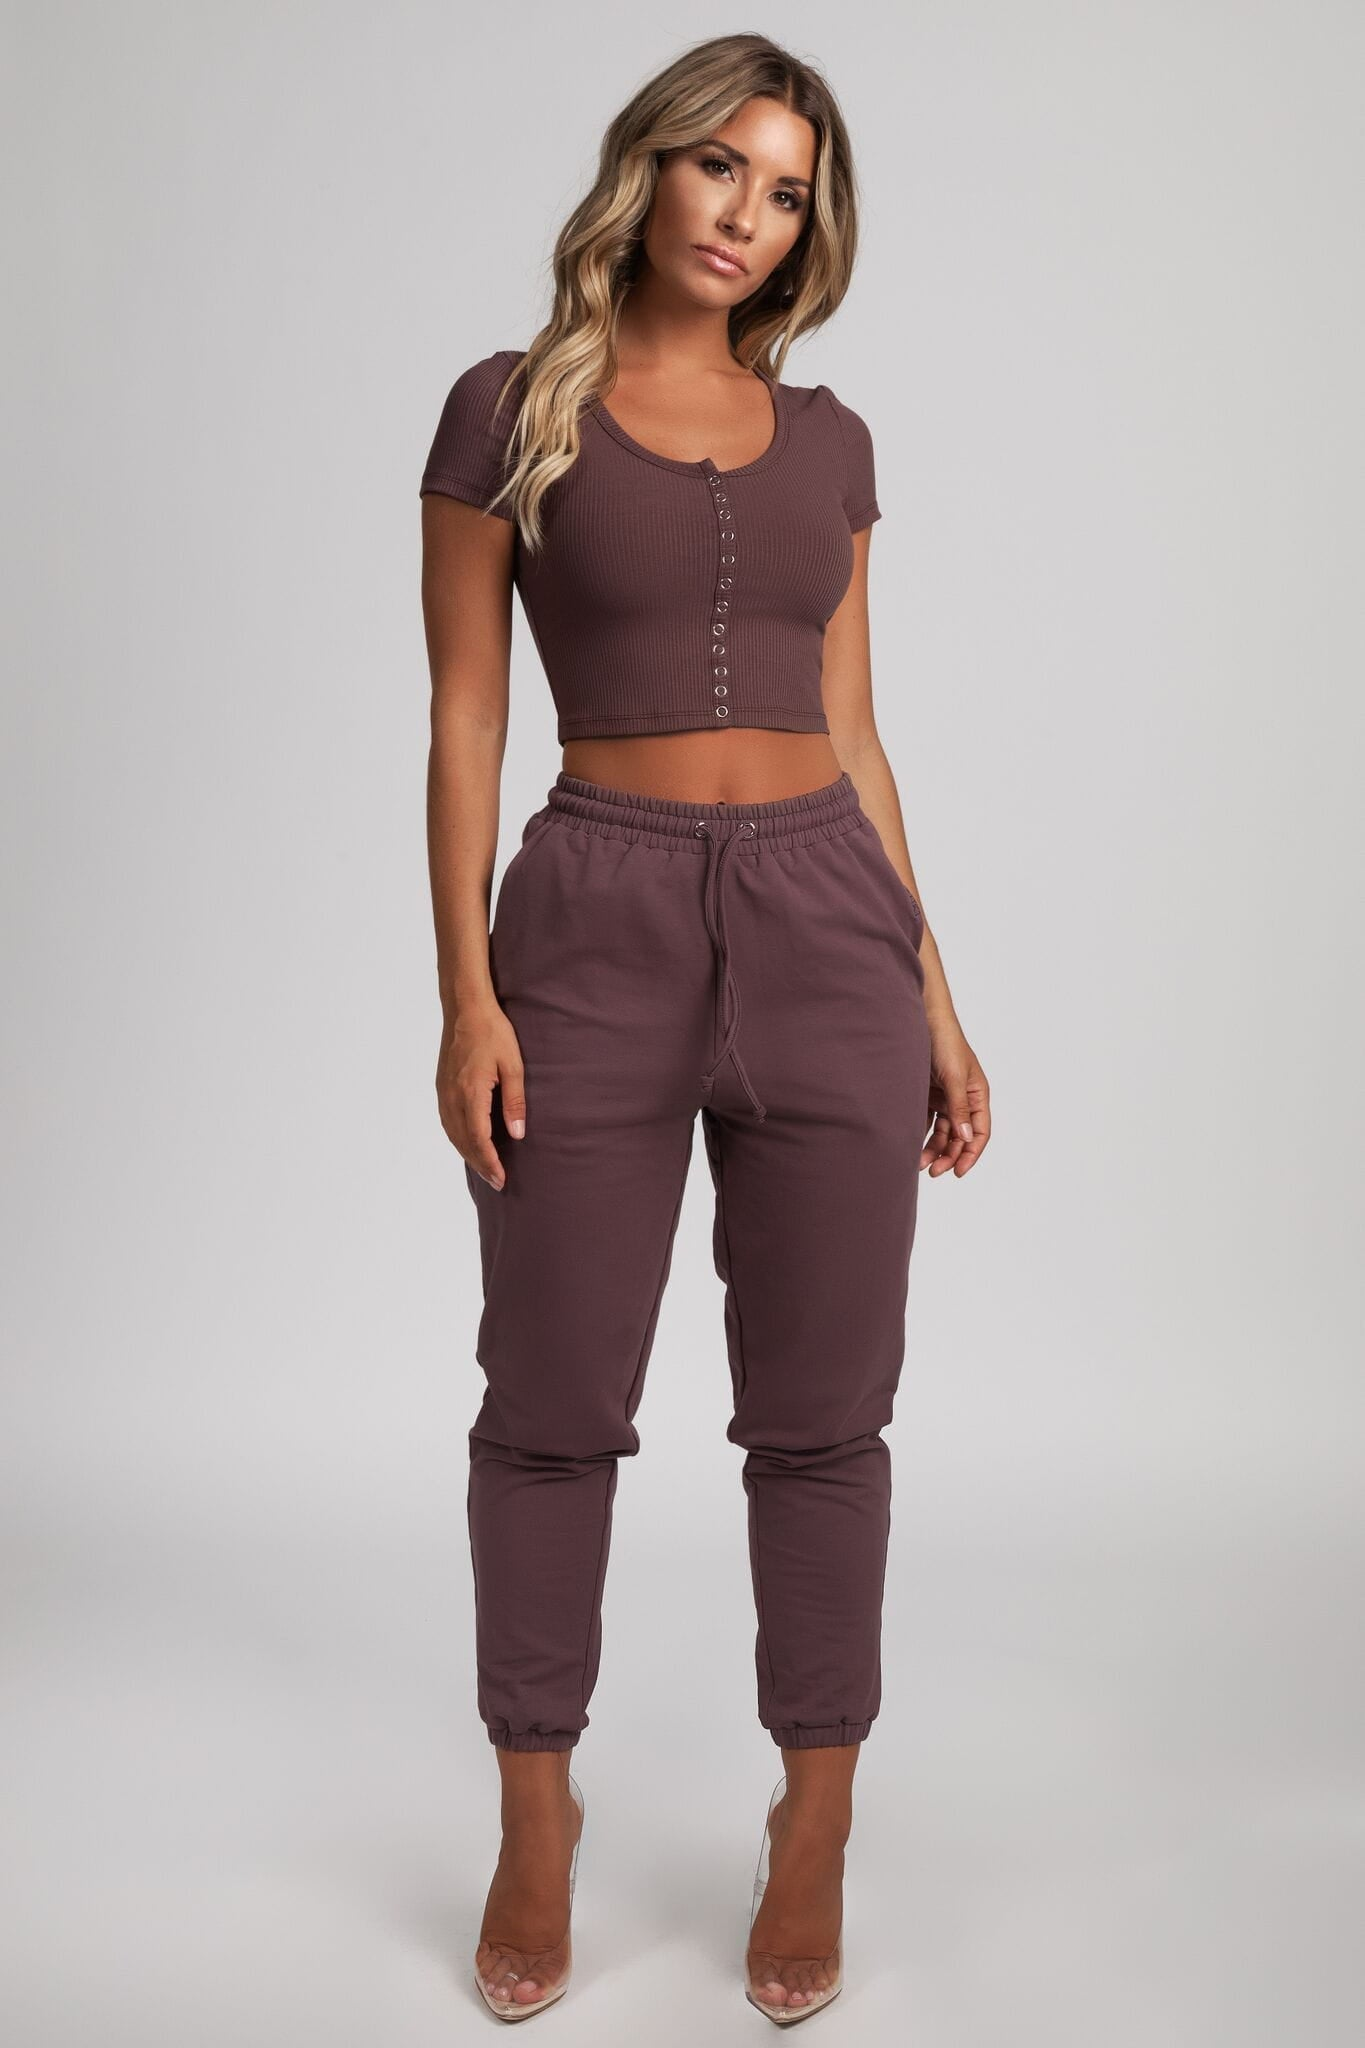 Basia Button Up Crop Top - Mauve - MESHKI